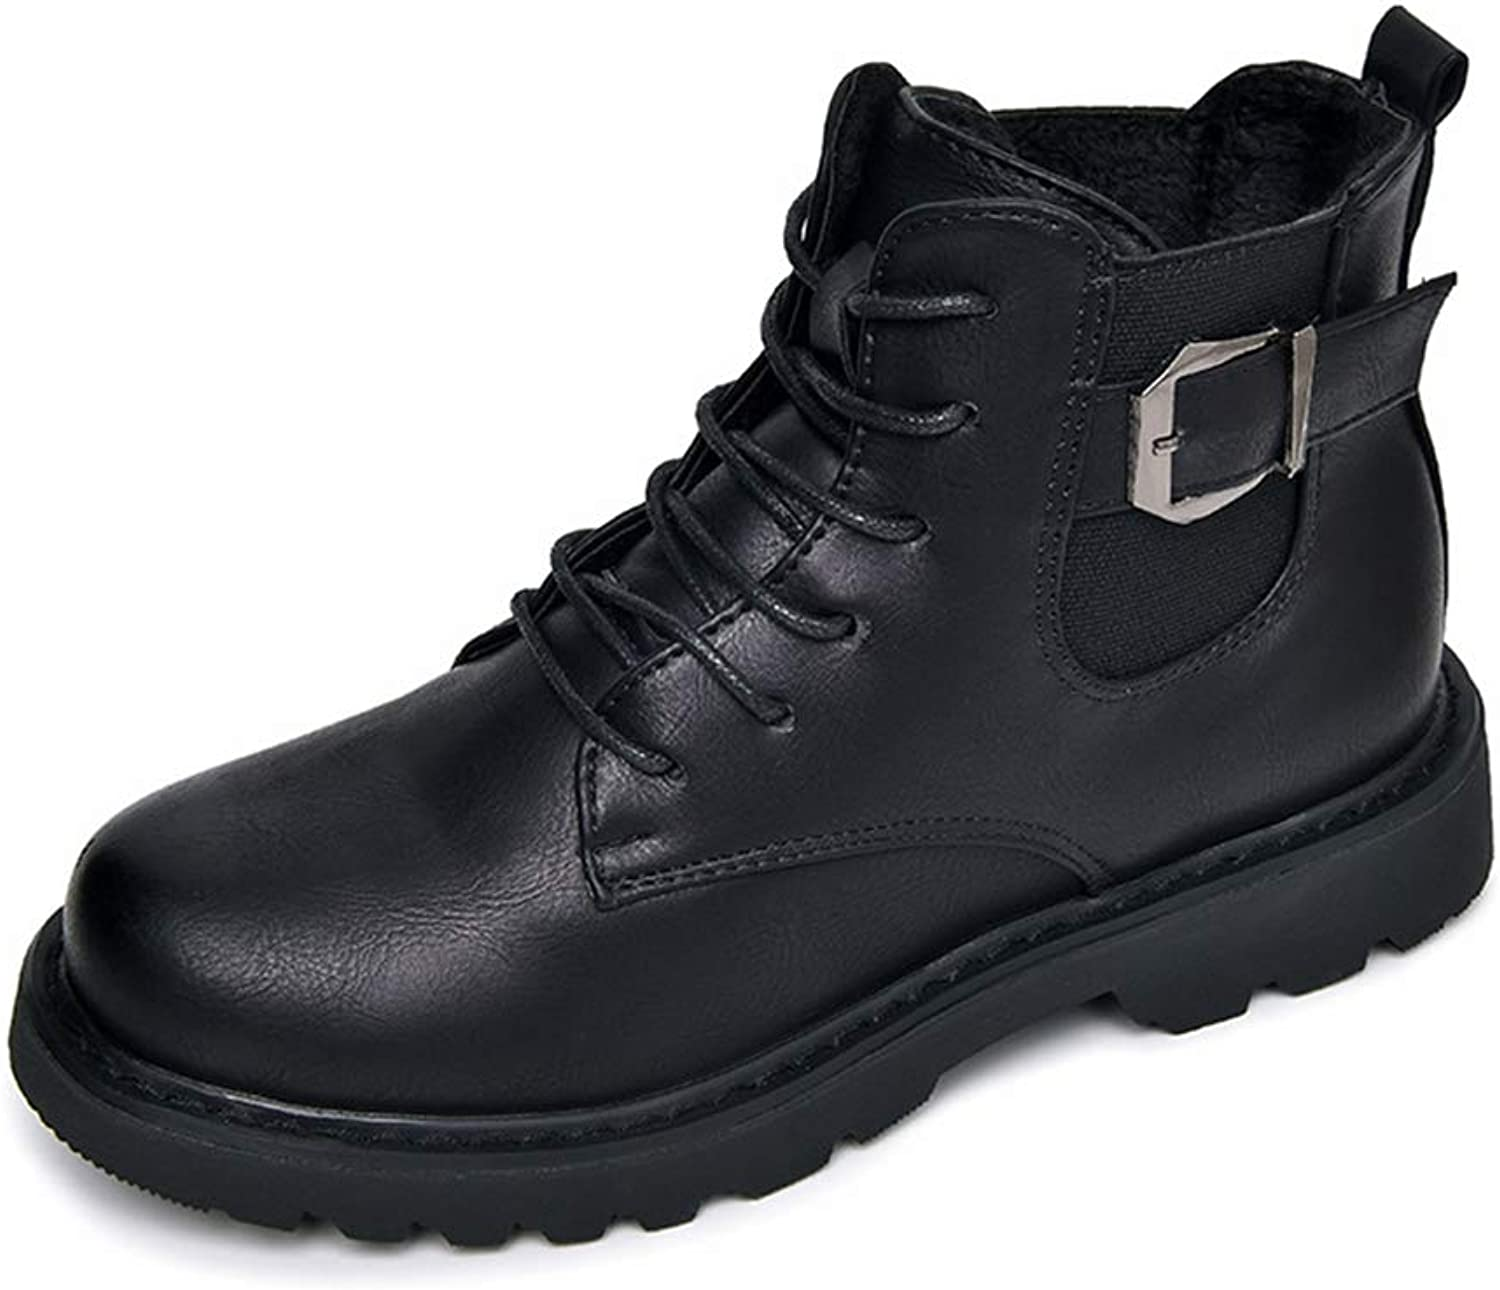 Super frist Women's Ankle Boots Flat Lace Up Boots Buckle Warm Waterproof Martin Boots